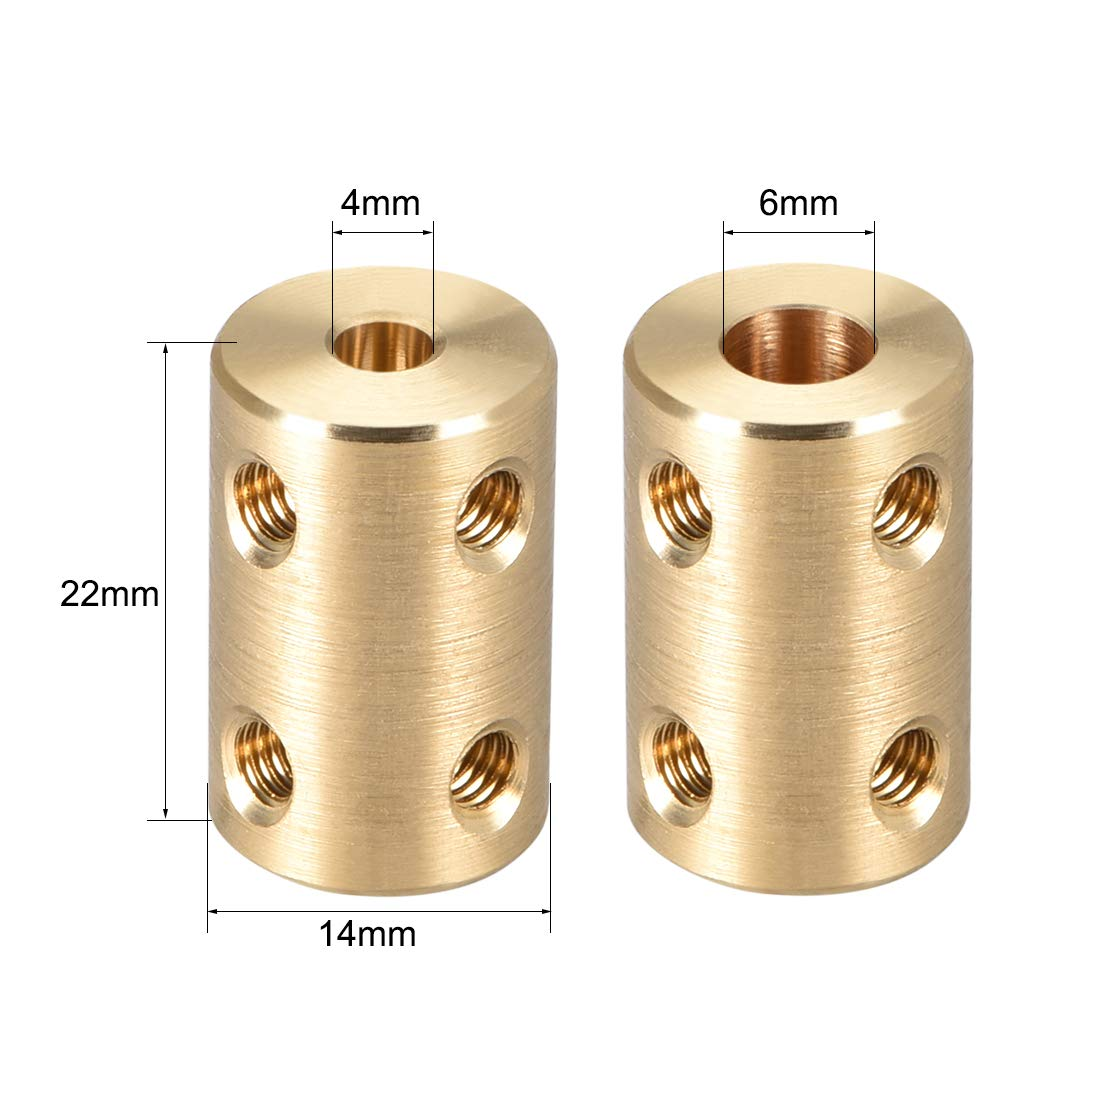 uxcell Shaft Coupling 8mm to 8mm Bore L22xD14 Robot Motor Wheel Rigid Coupler Connector Gold Tone 2 Pcs